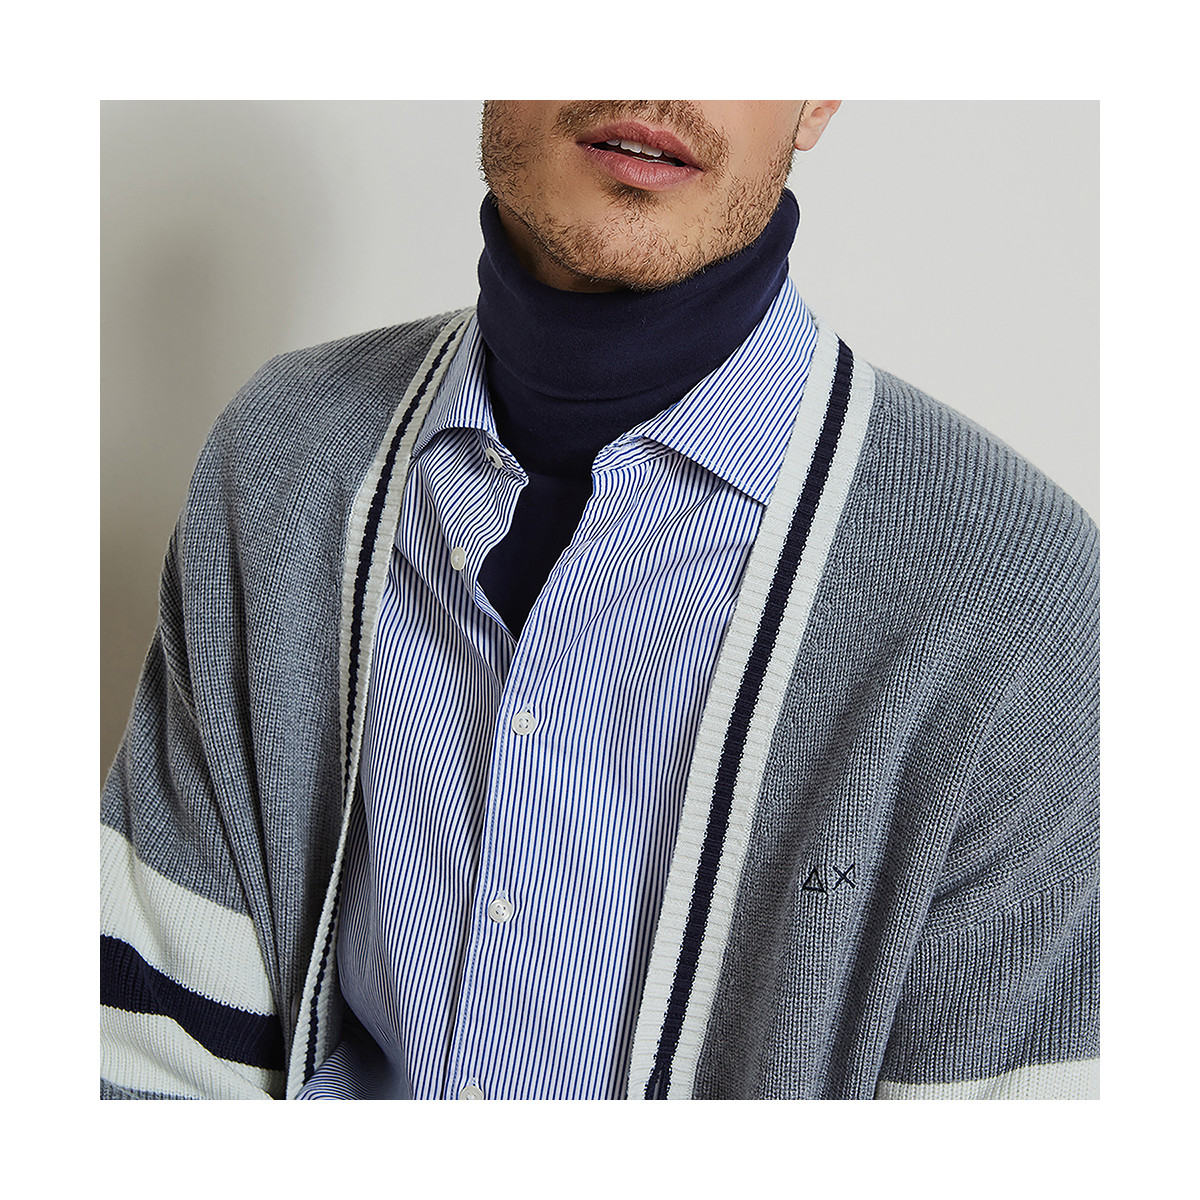 SHIRT DETAILS FRENCH COLLAR L/S NAVY BLUE/WHITE